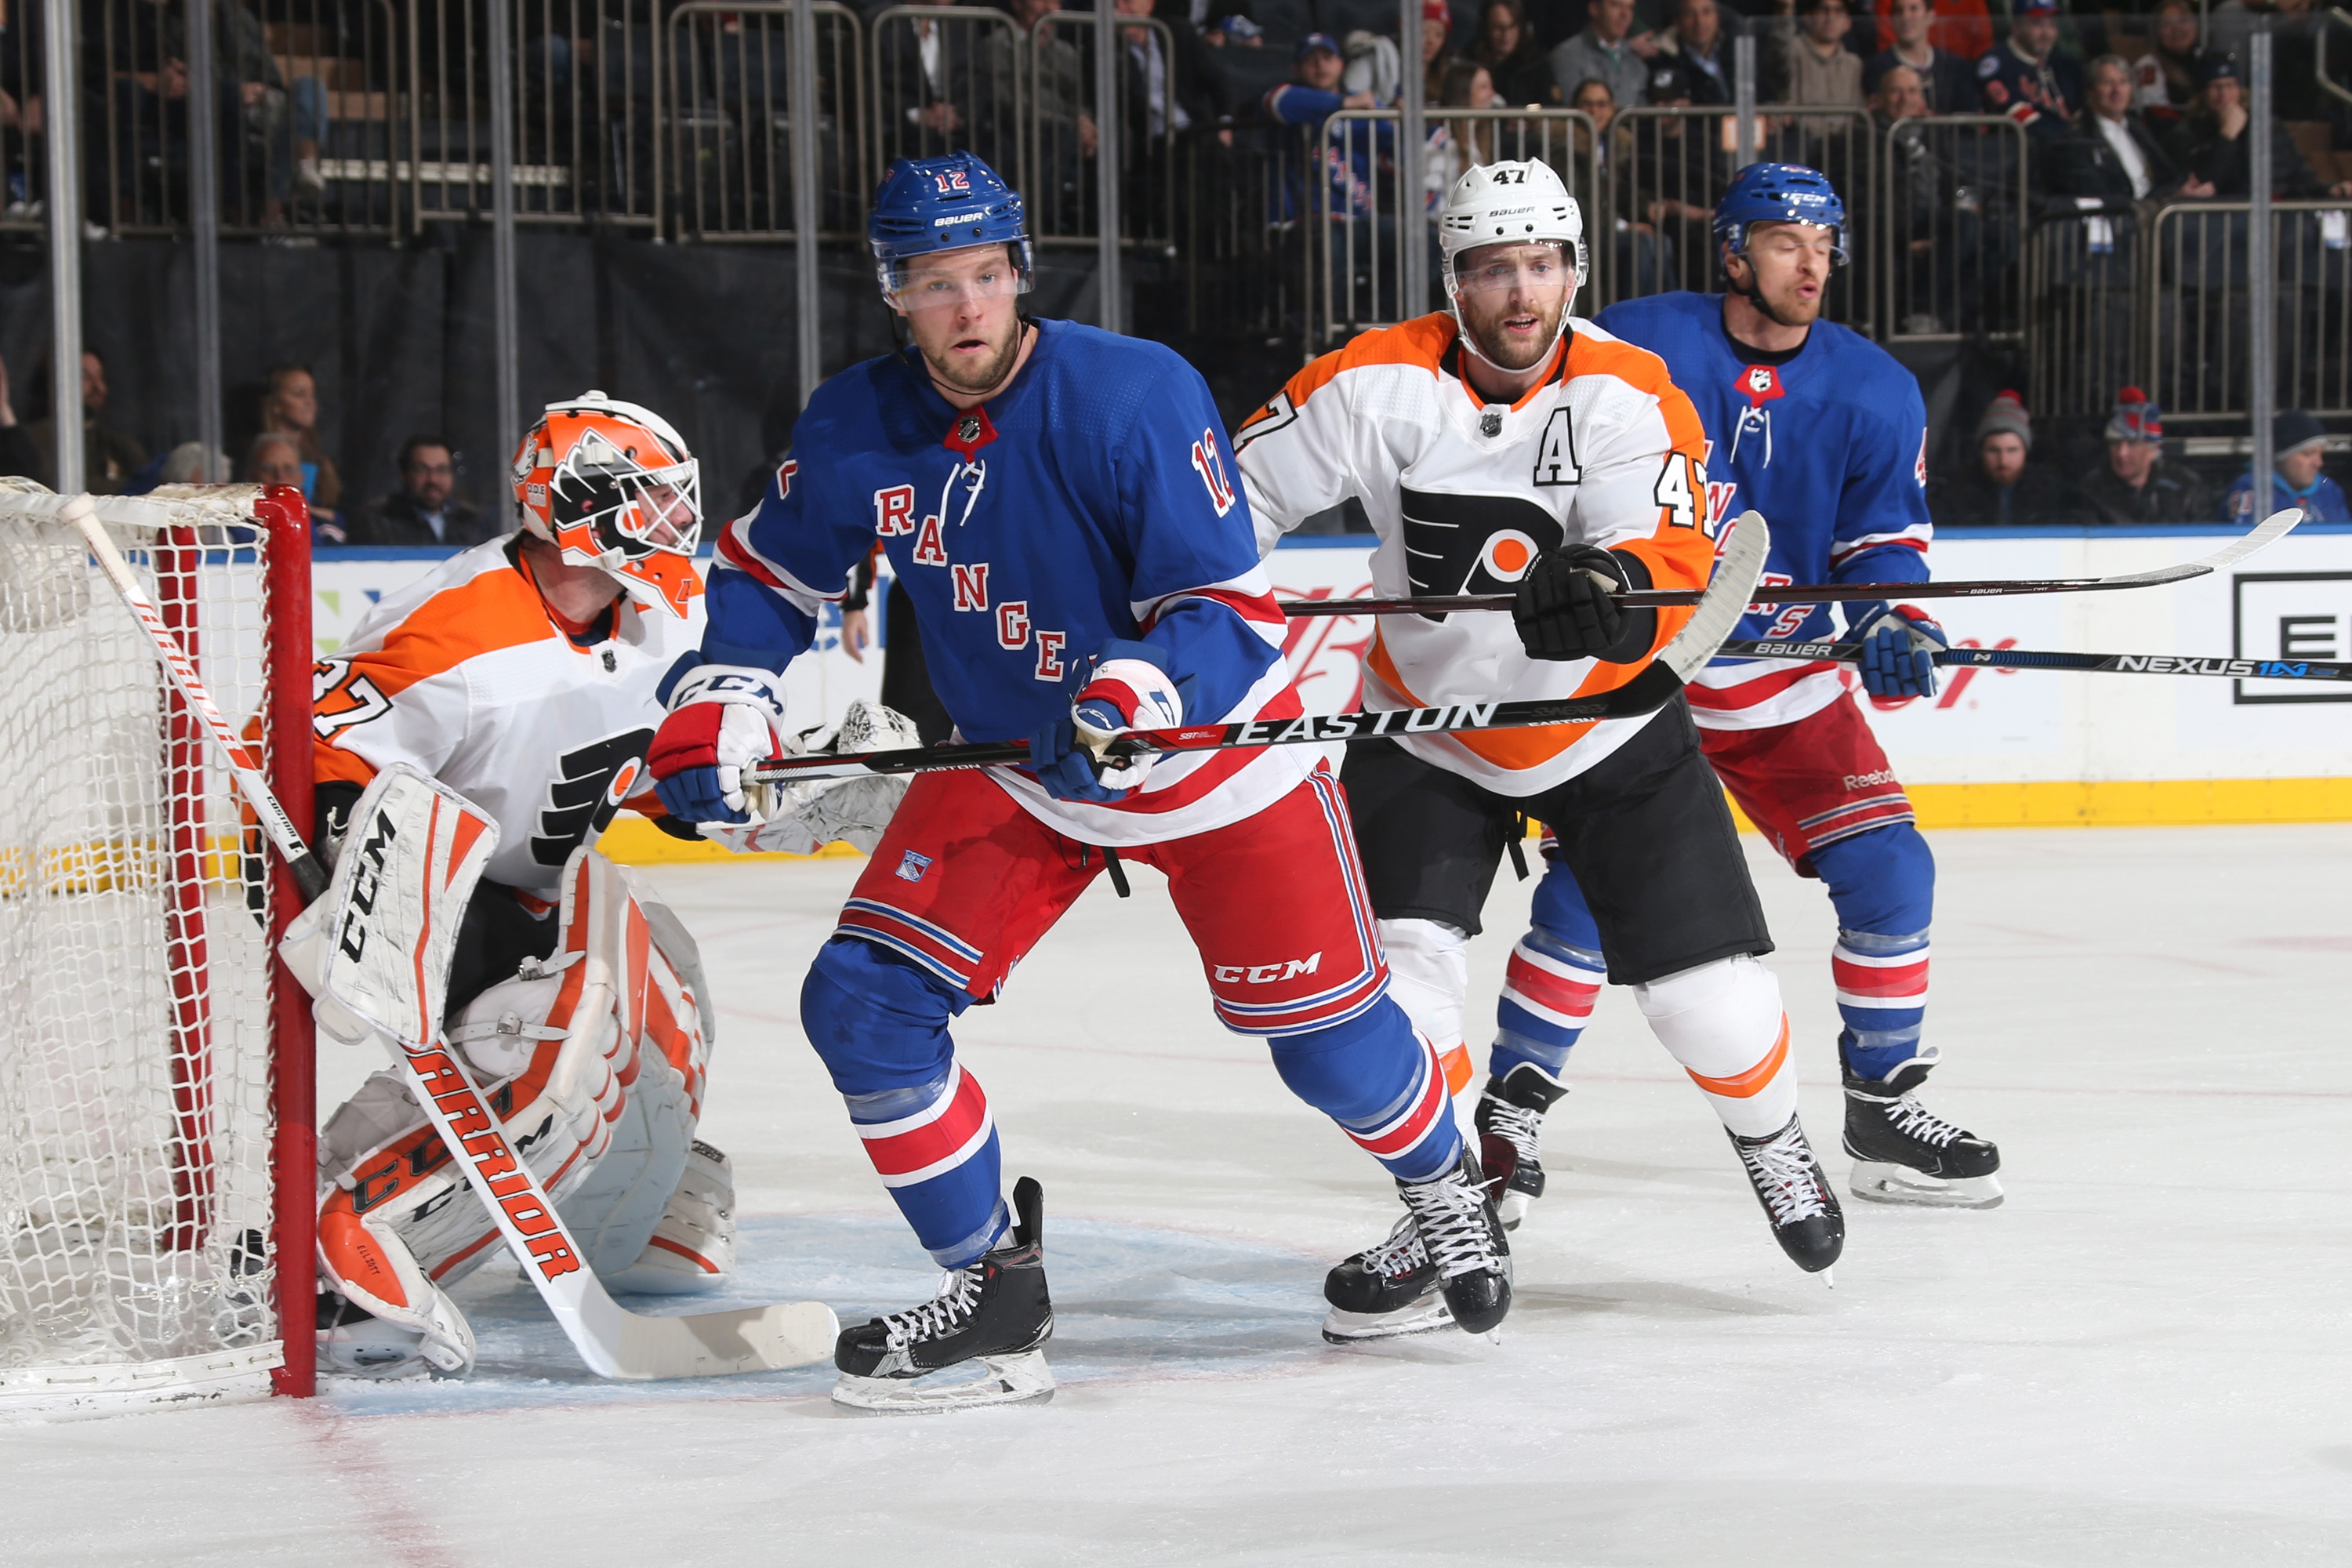 New York Rangers Analysis: Lose wild one to Flyers 7-4